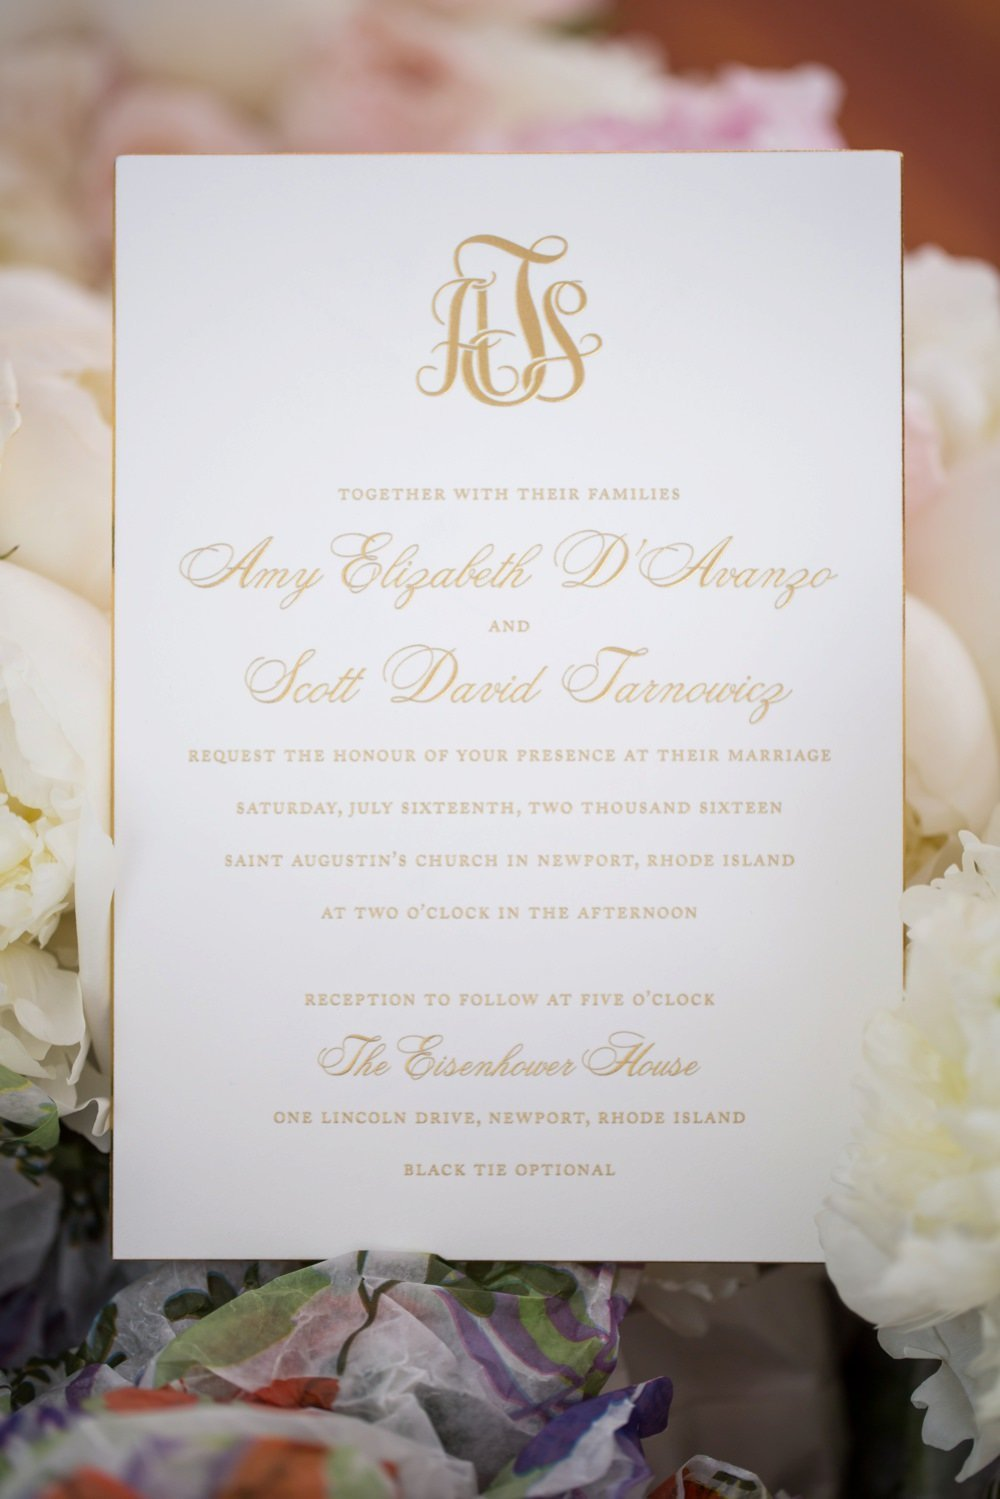 Classic monogramed wedding invitation in gold foil for Eisenhower House wedding